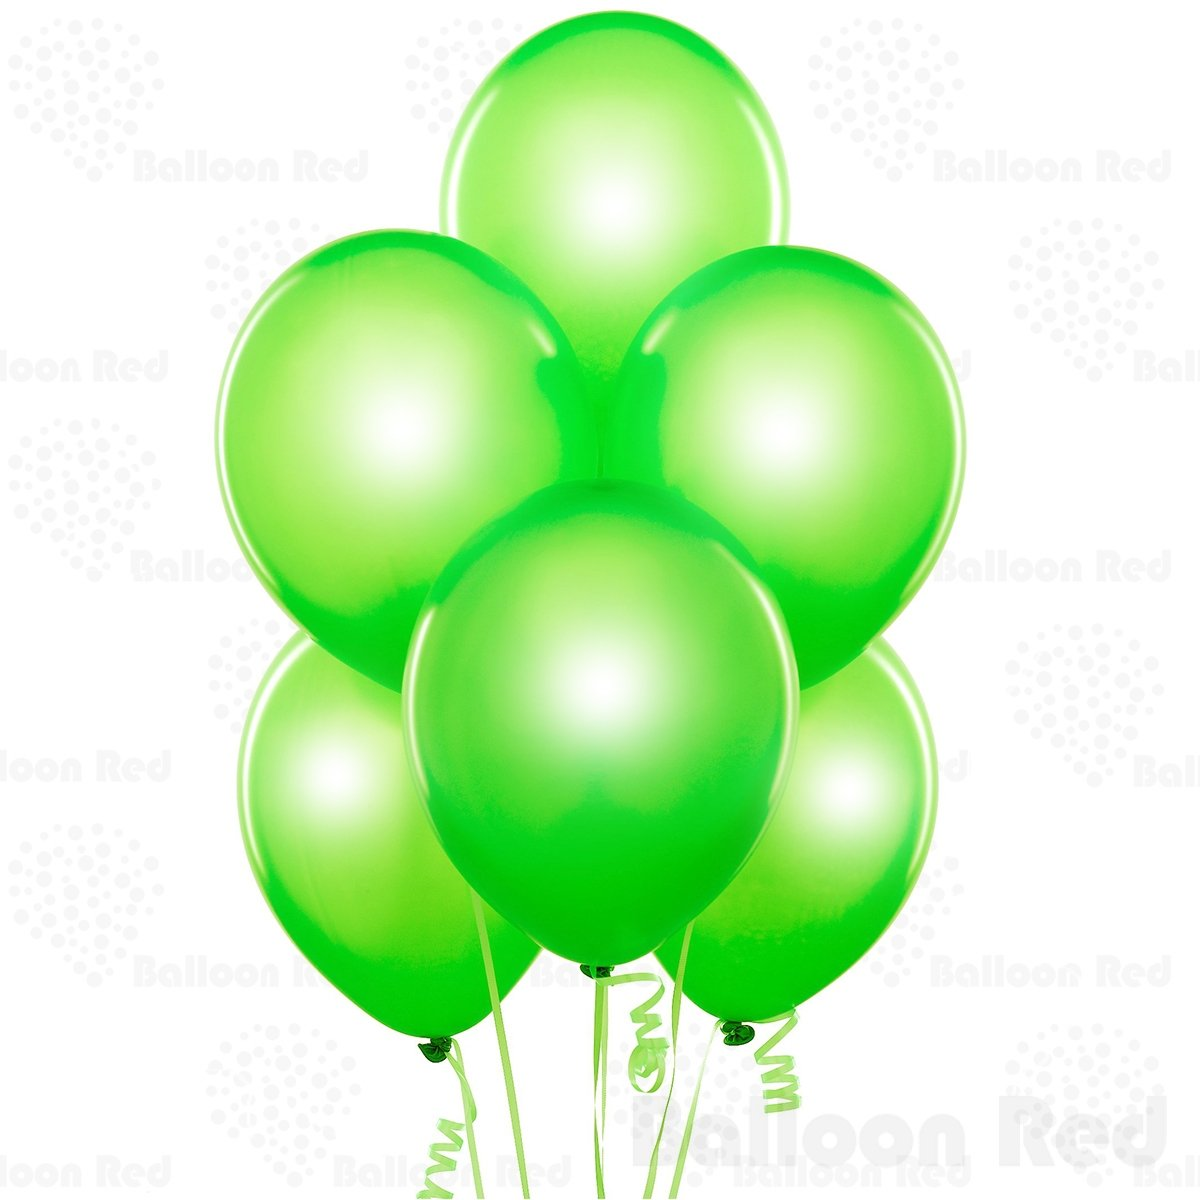 Pack of 100 10 Inch Pearlized Latex Balloons Premium Helium Quality Metallic Emerald Green